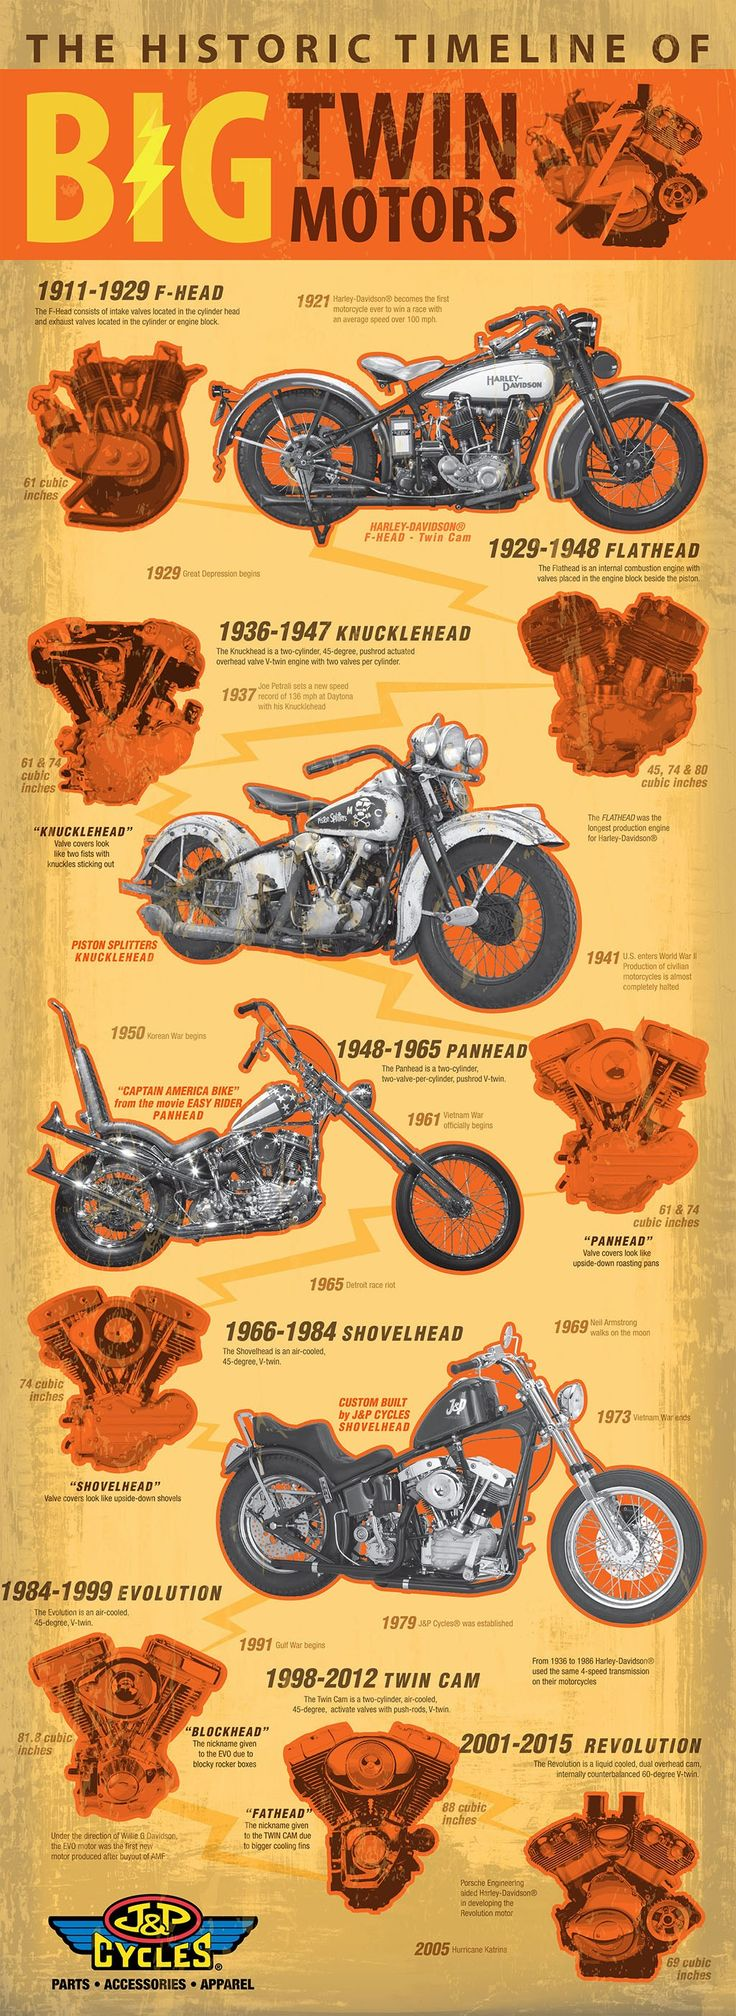 The Historic Timeline of Big Twin Motors Infographic